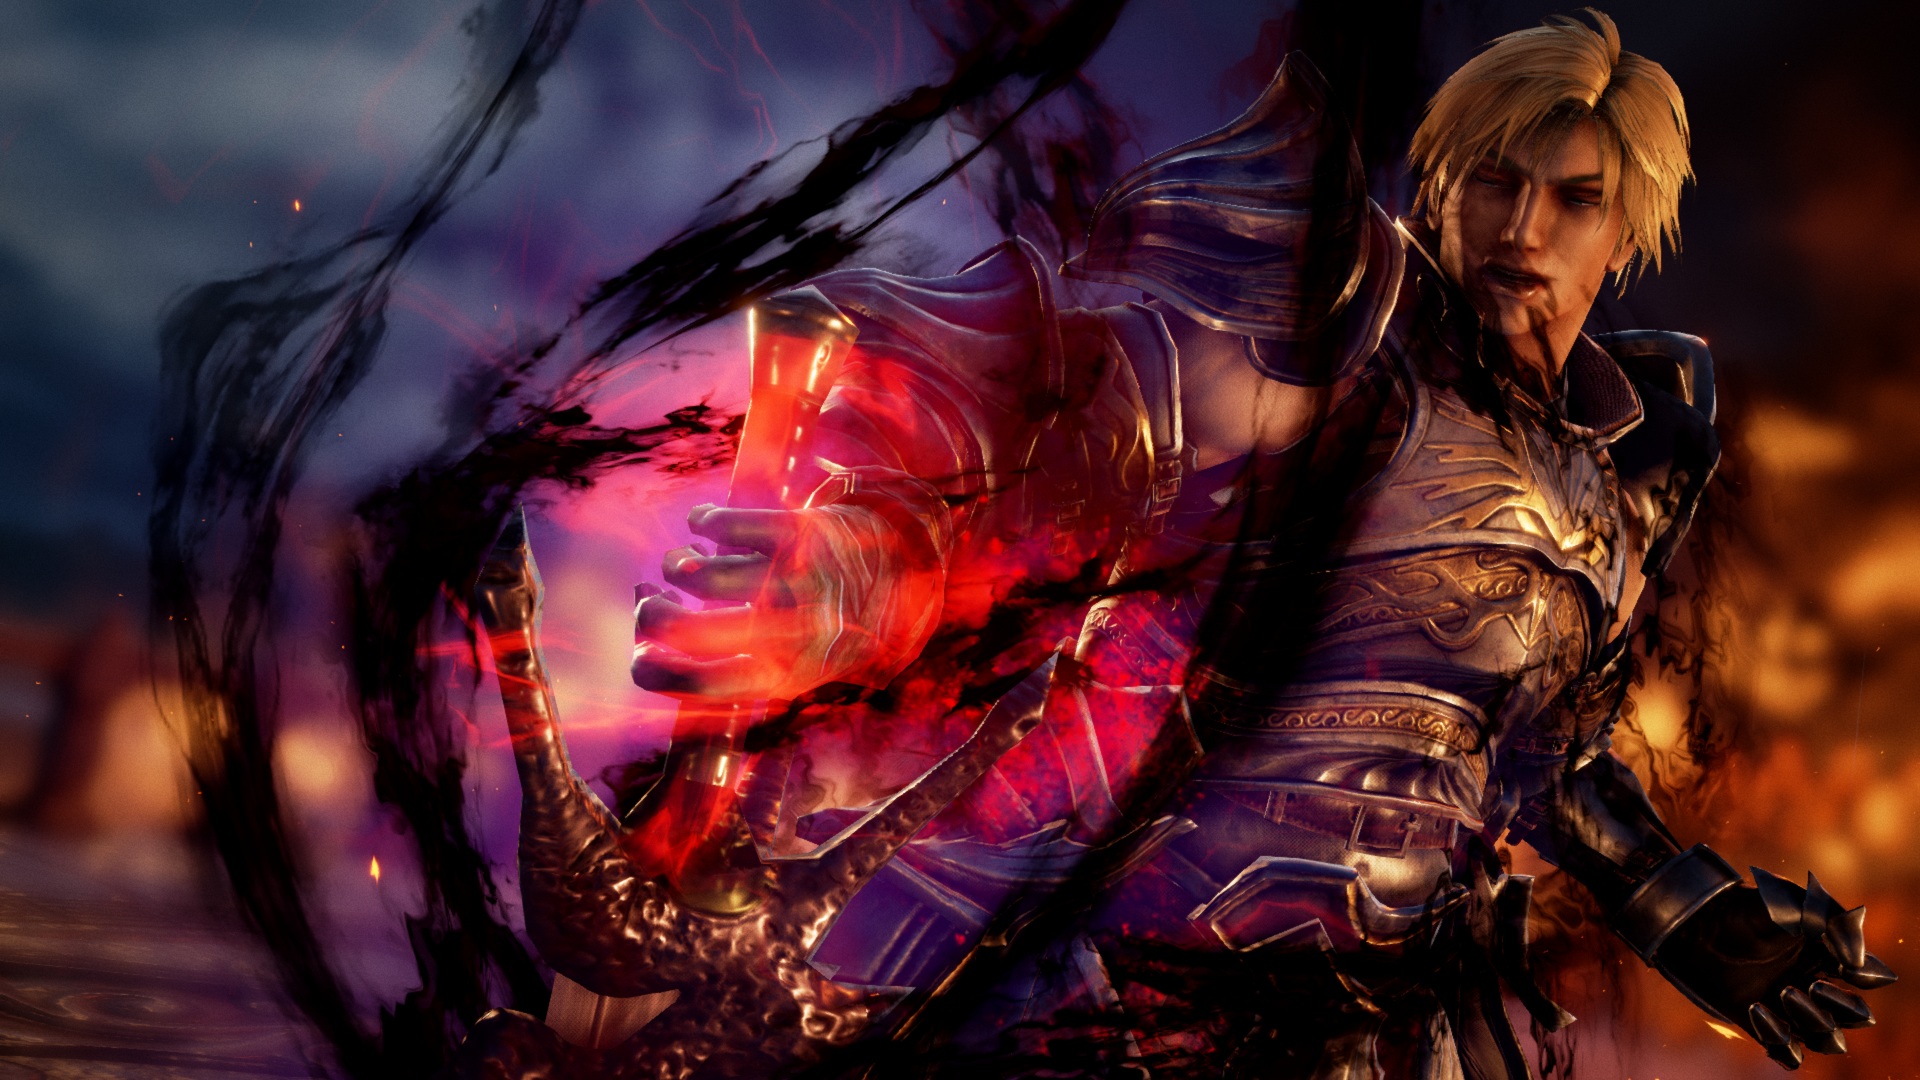 Soulcalibur 6 Amy Sorel Revealed, Armor Pack 1 Out Soon